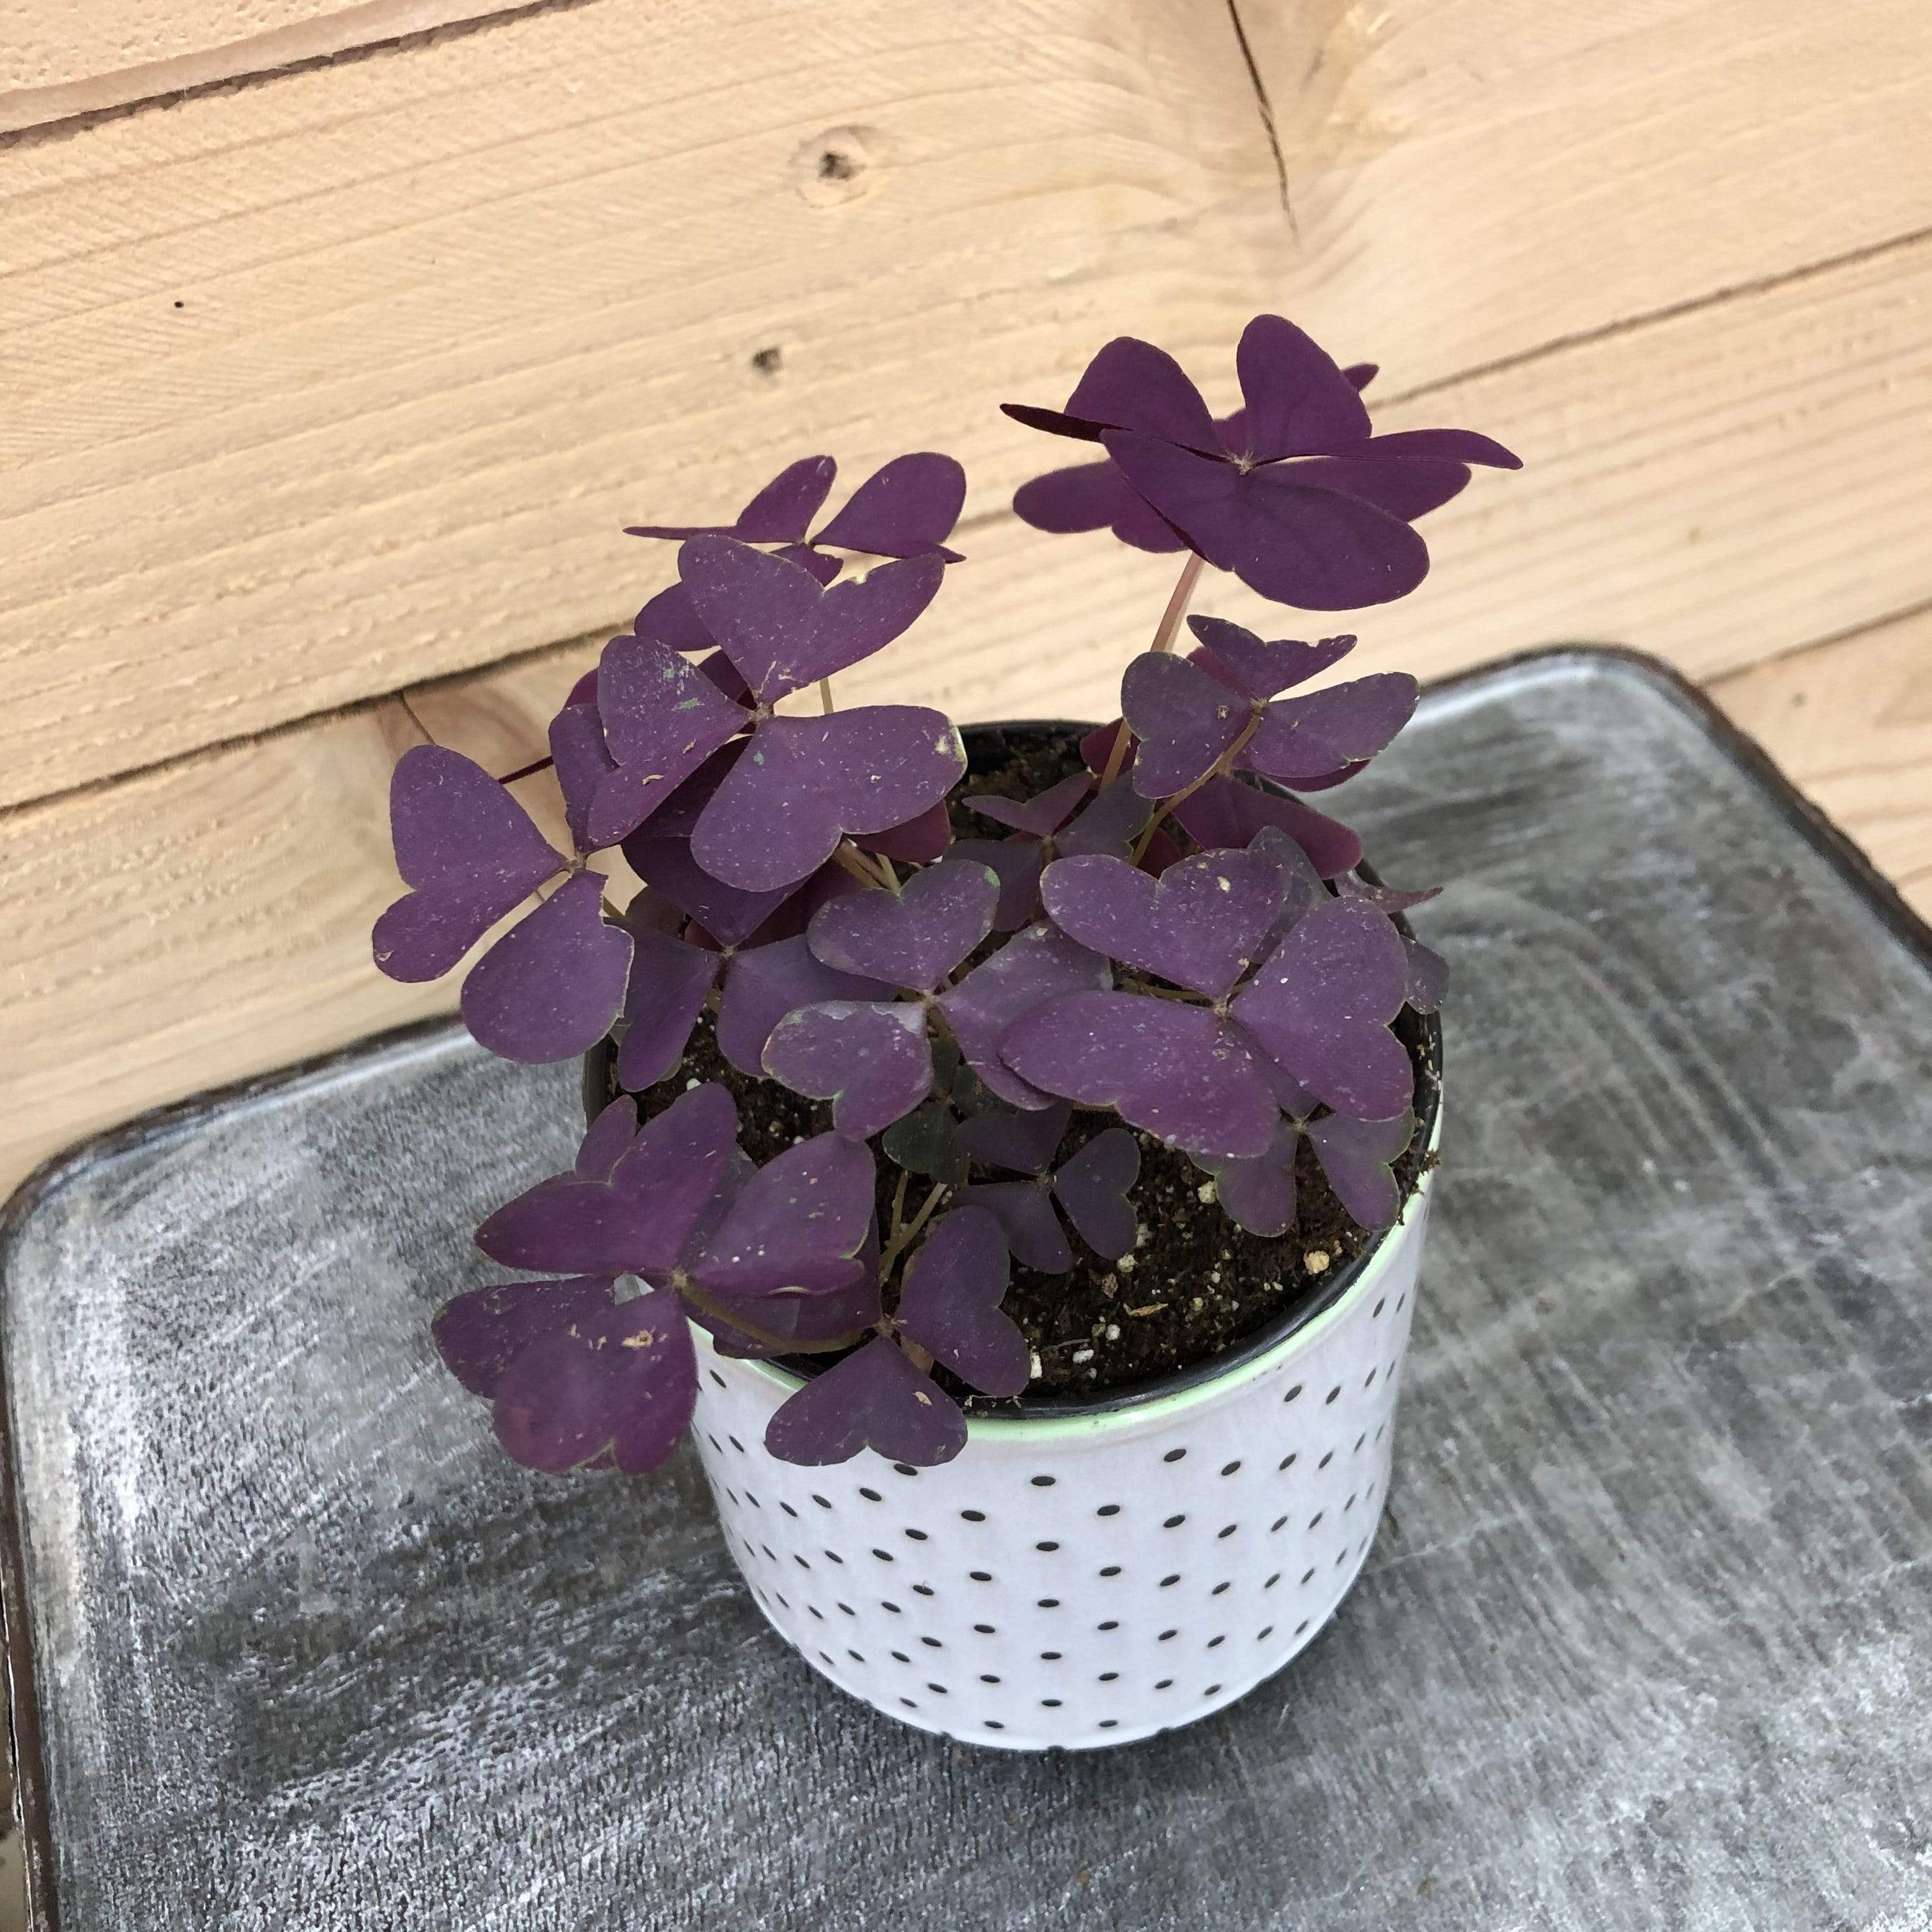 "The Plant Farm Holiday Plants 4"" Plant Oxalis Regnellii Francis Plant"